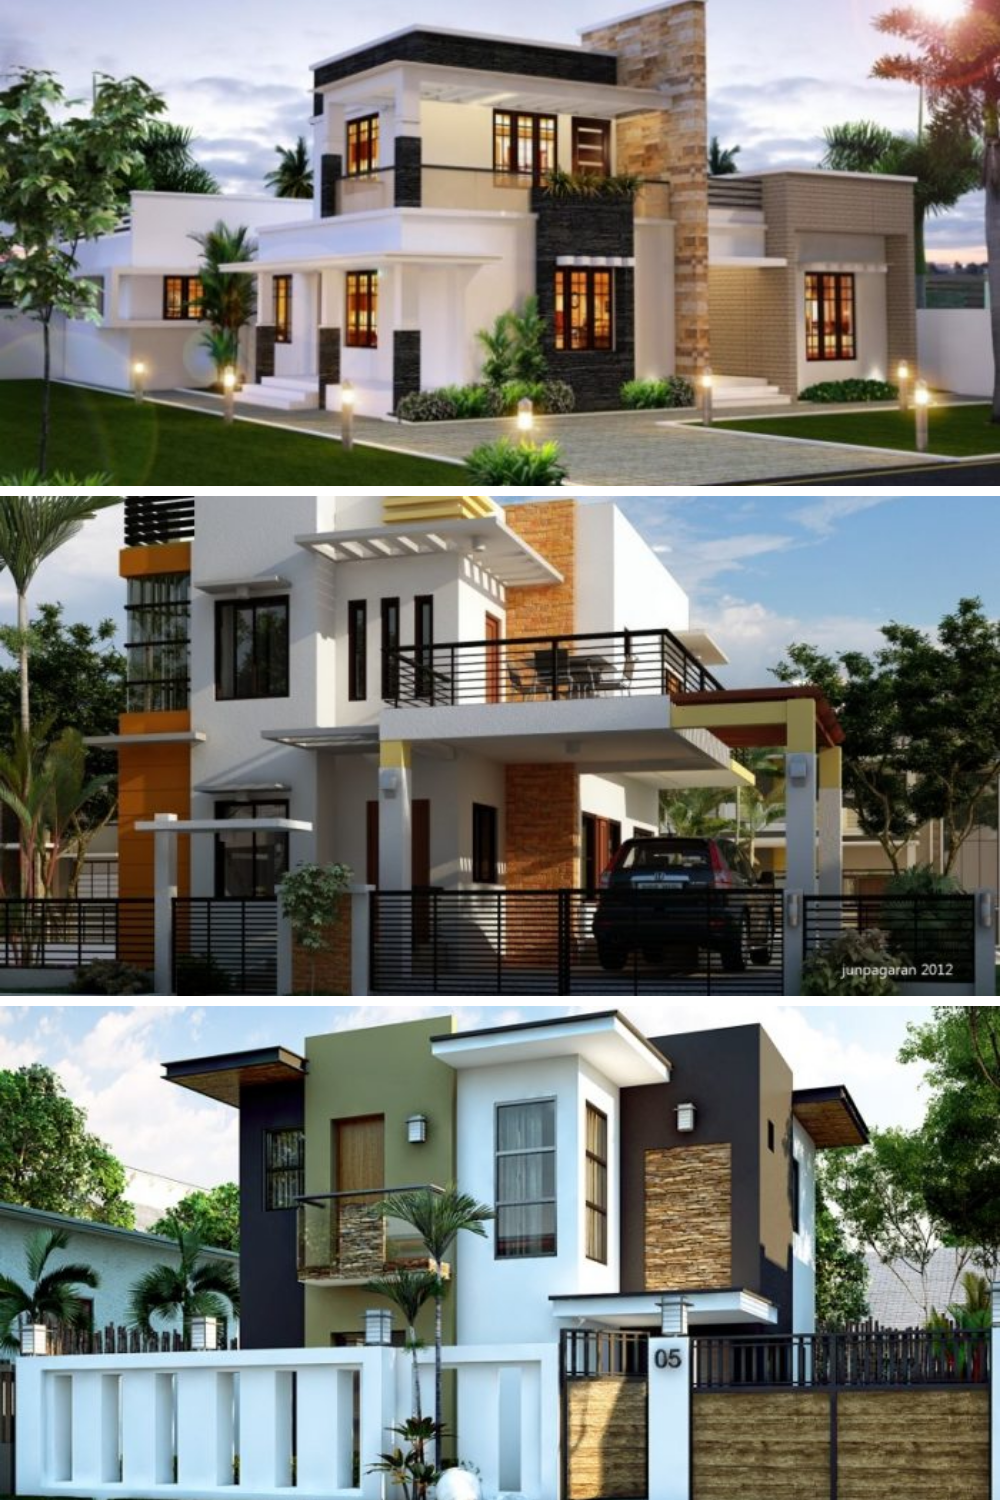 Two Story Small Home With Three Bedrooms In 2020 Philippines House Design Model House Plan Small House